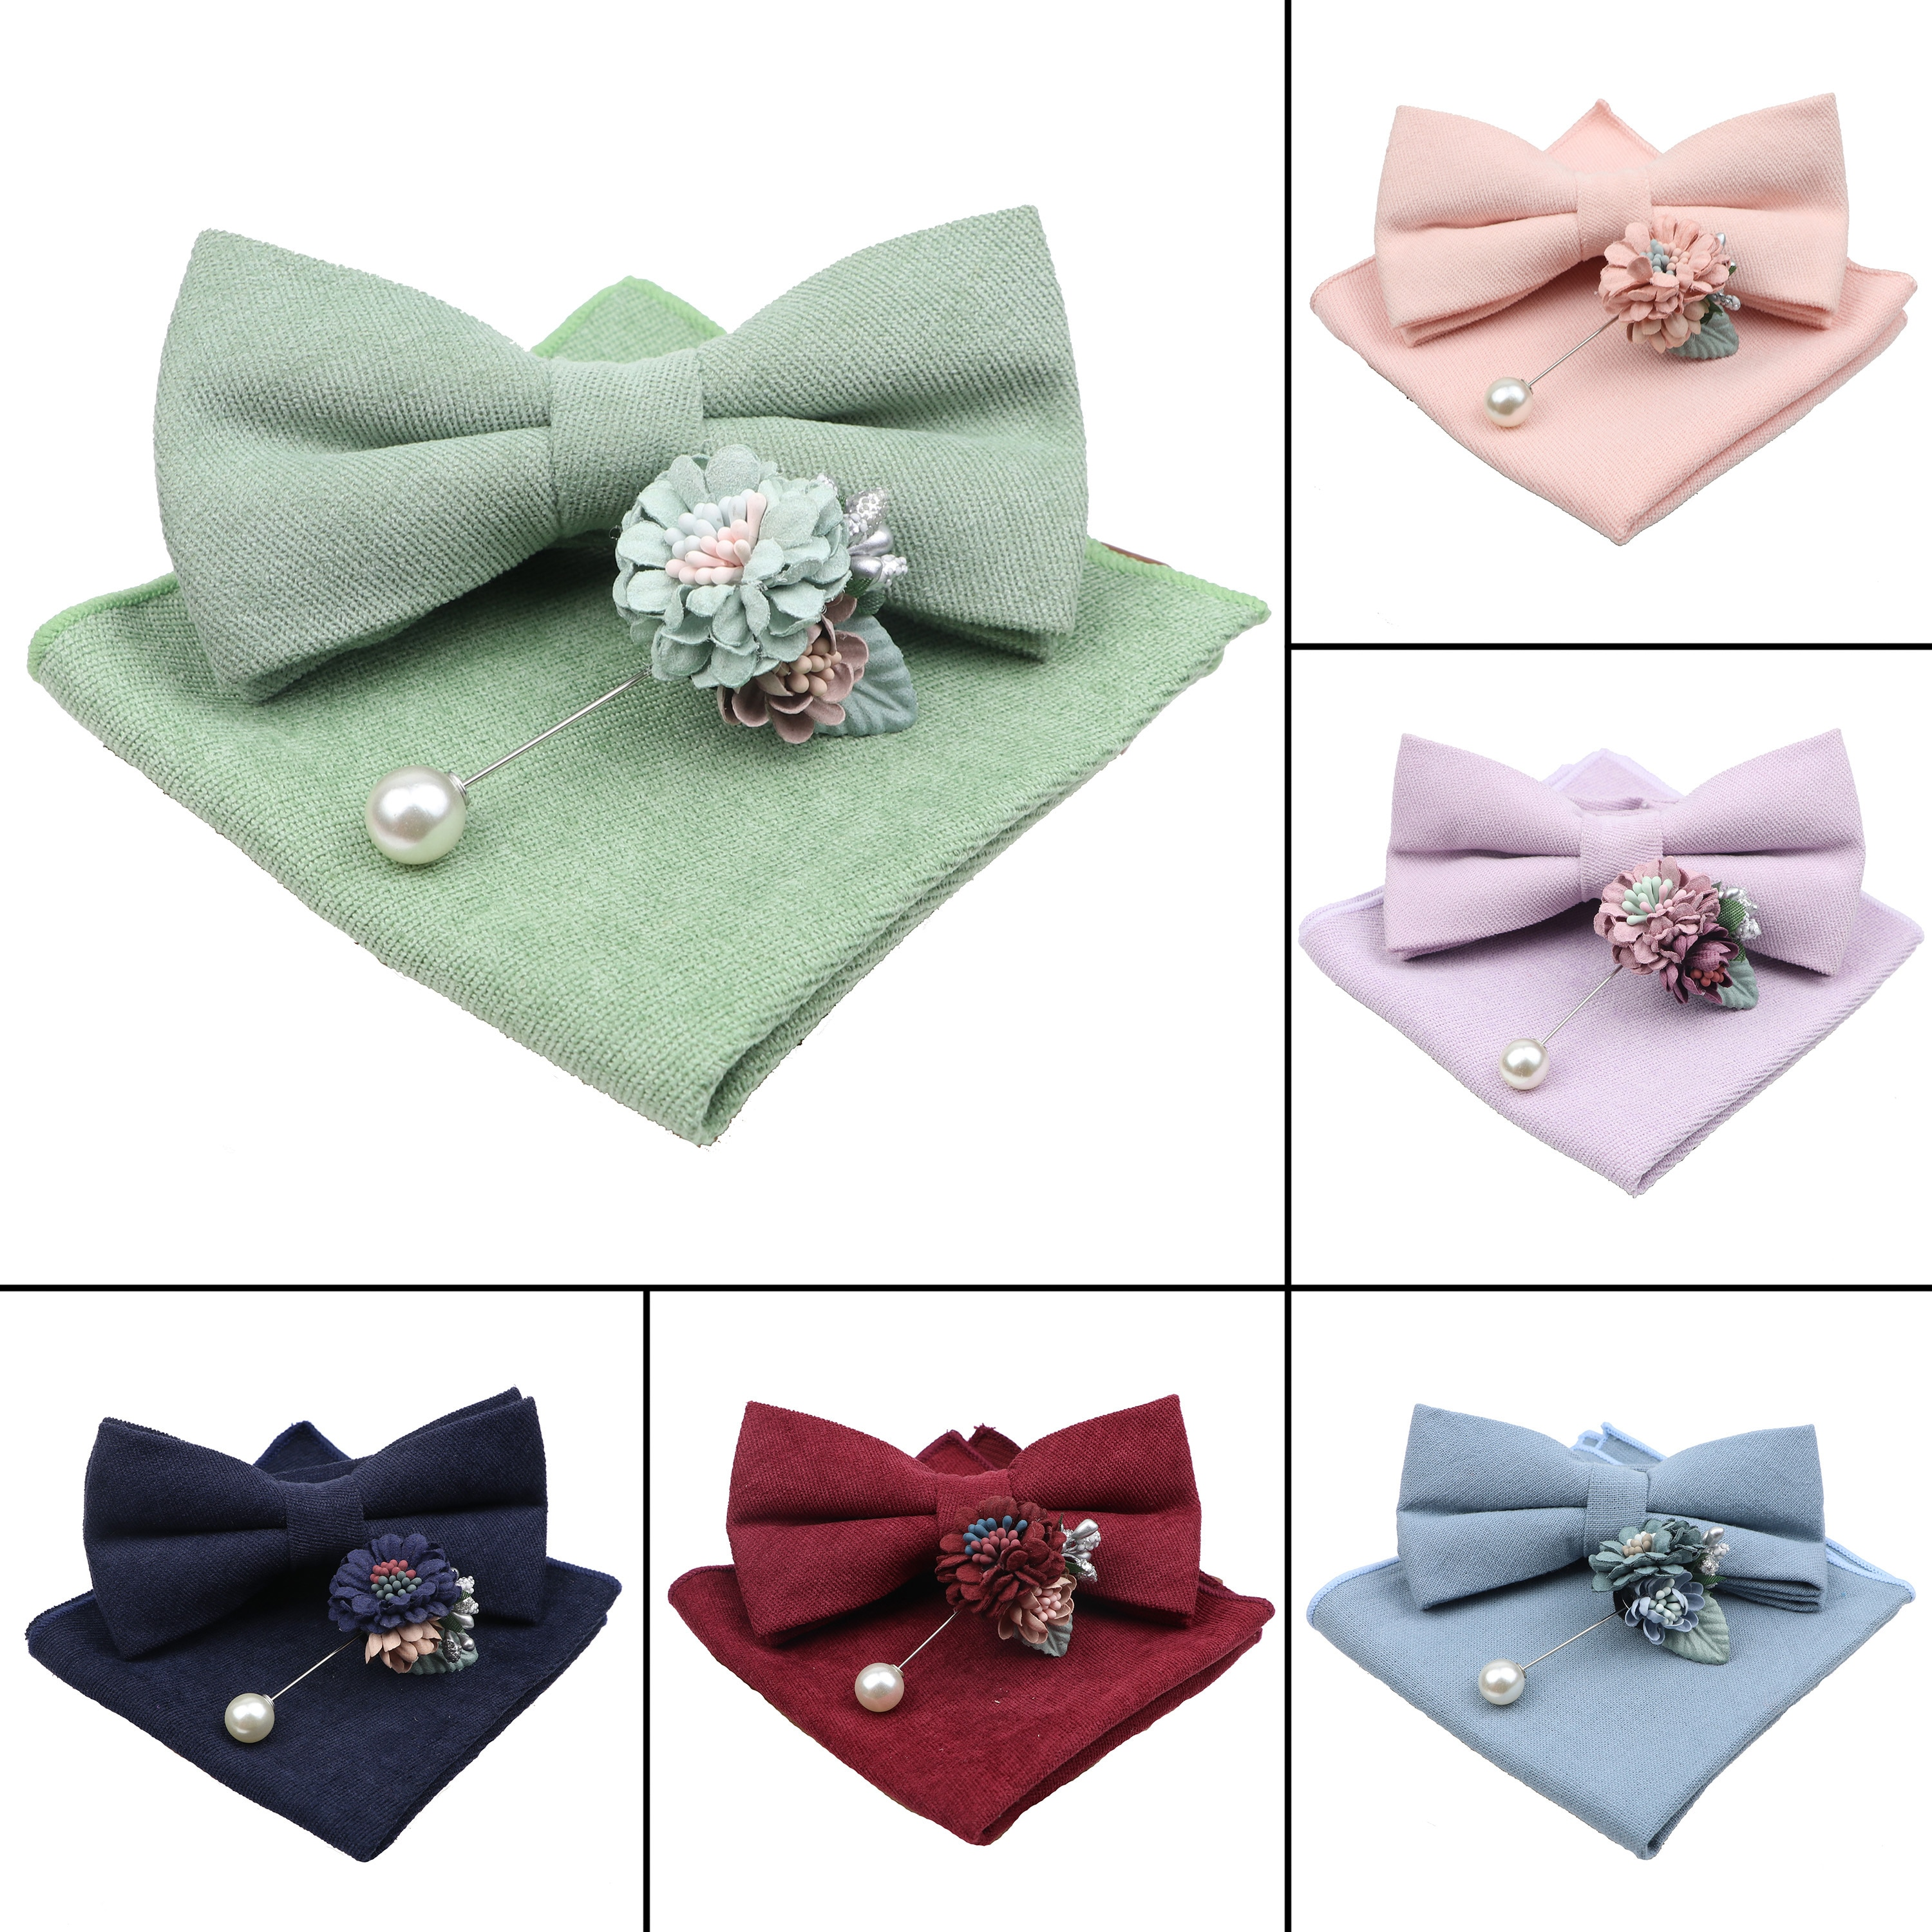 Solid Color Super Soft Suede Men Cotton Bow Tie Handkerchief Brooch Set Bowtie Bowknot Pink Blue Butterfly Wedding Novelty Gift